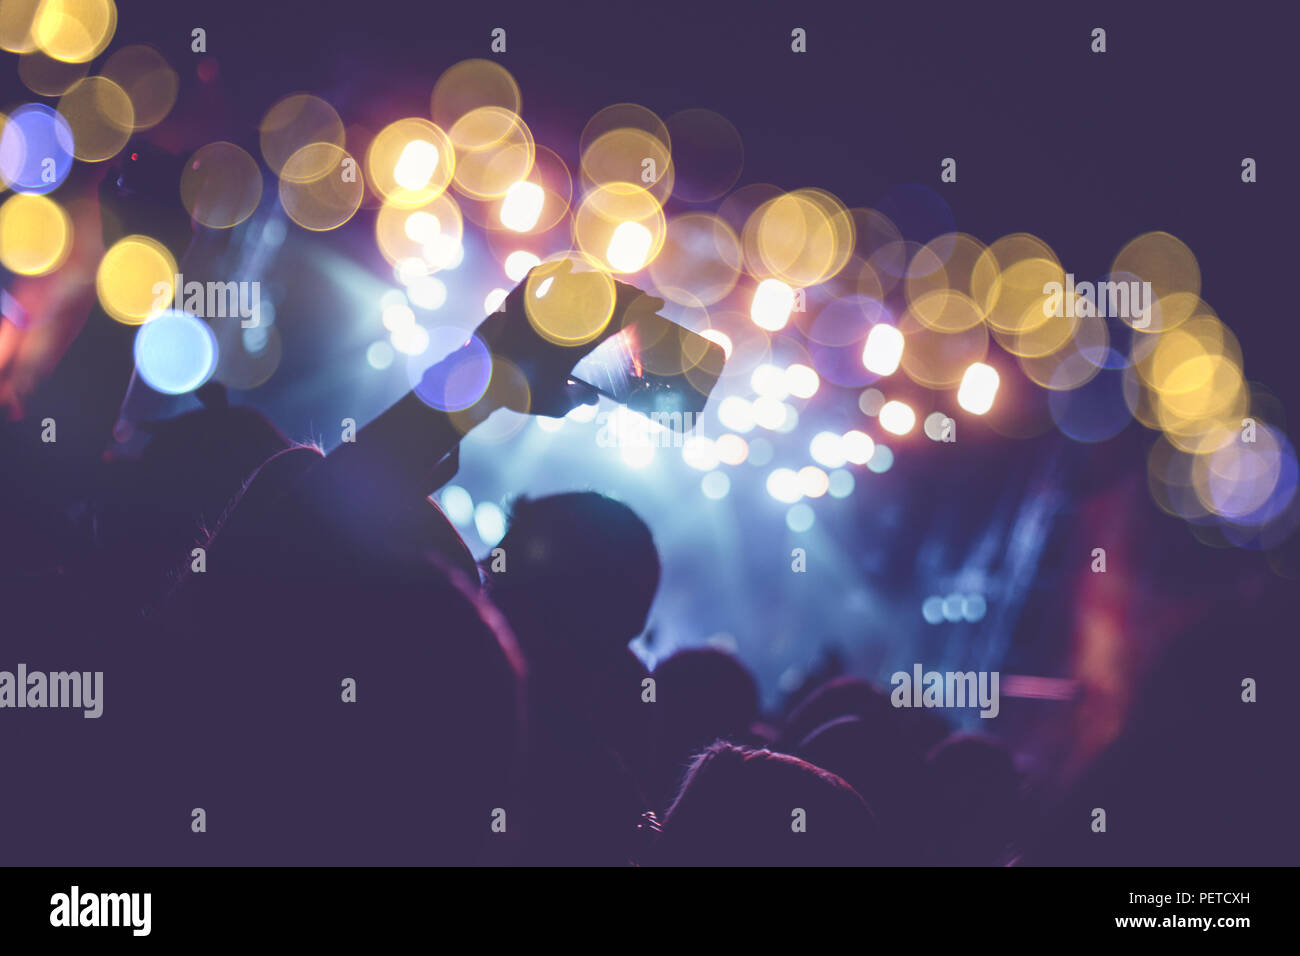 Silhouettes of festival concert crowd in front of bright stage lights. - Stock Image